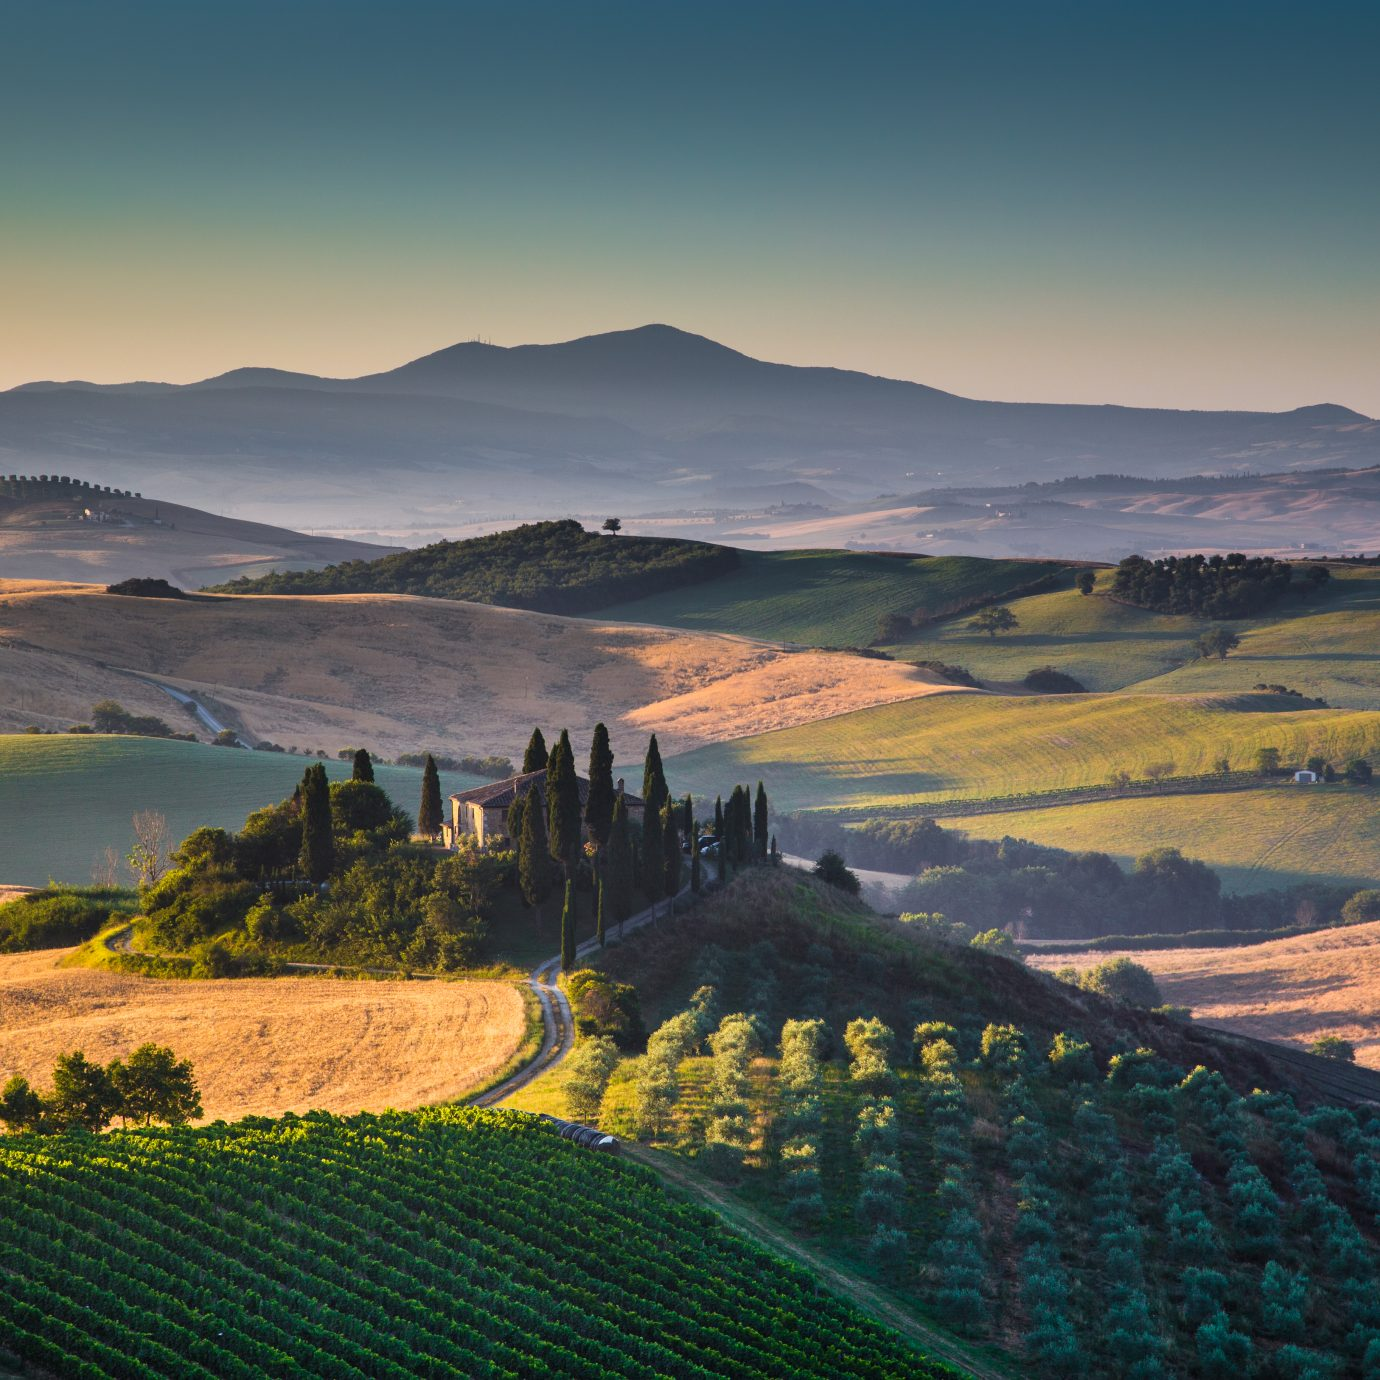 Scenic Tuscany landscape with rolling hills and valleys in golden morning light, Val d'Orcia, Italy.